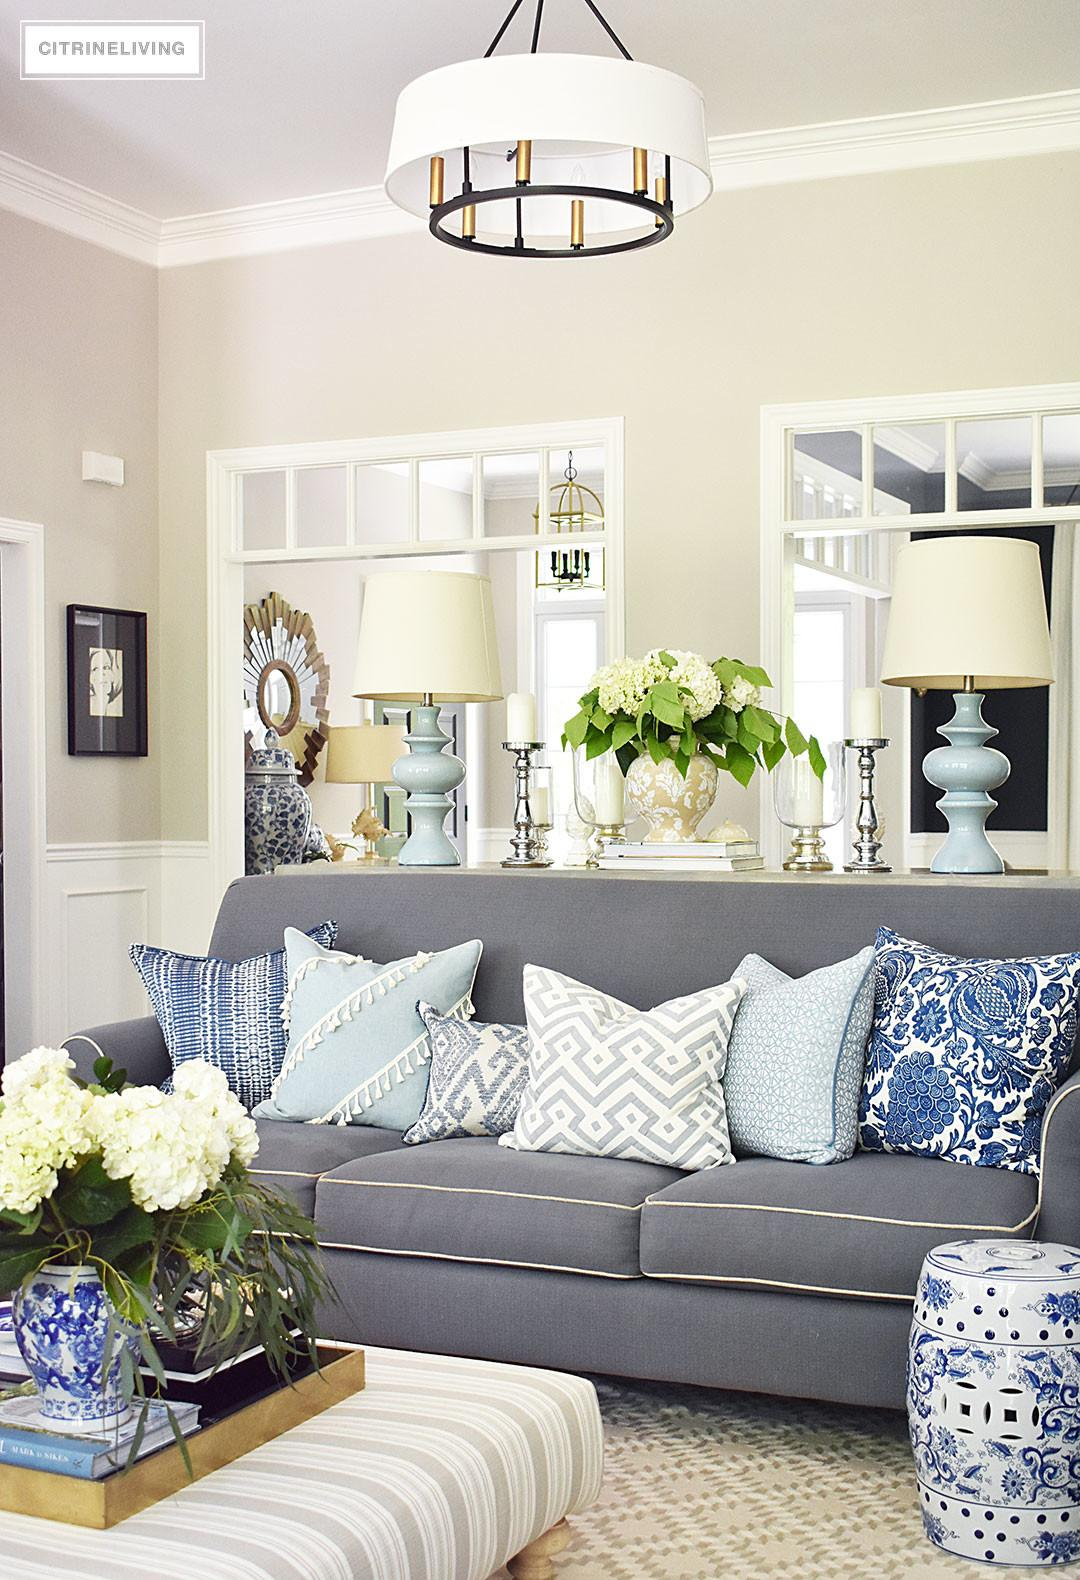 Simple Summer Decorating Tips Citrineliving